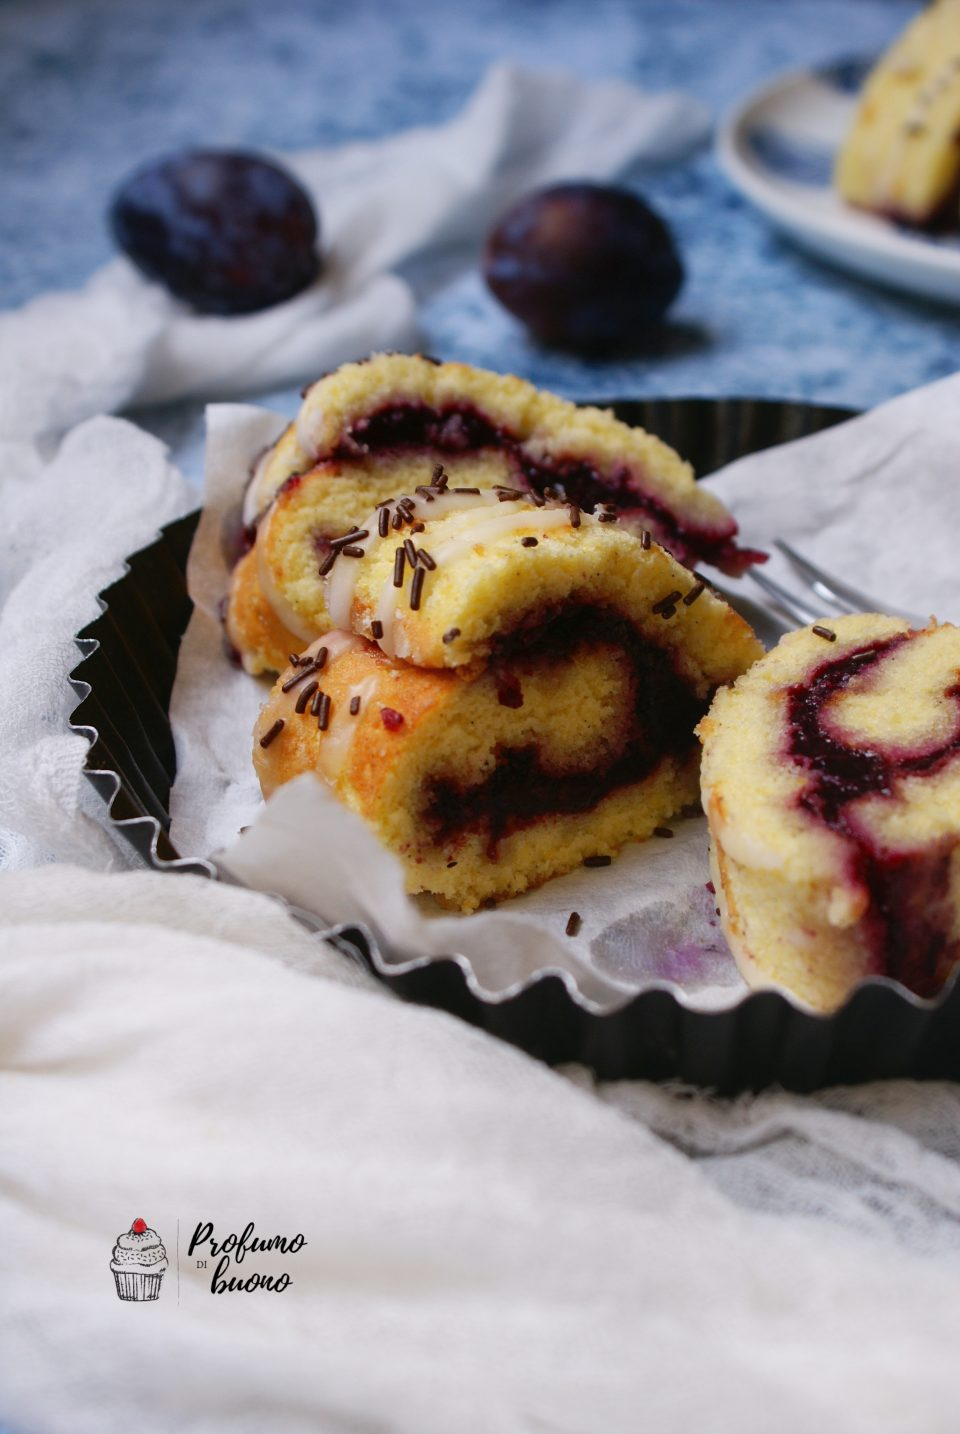 Swivels gluten jam of berries with lemon frosting and chocolate tails